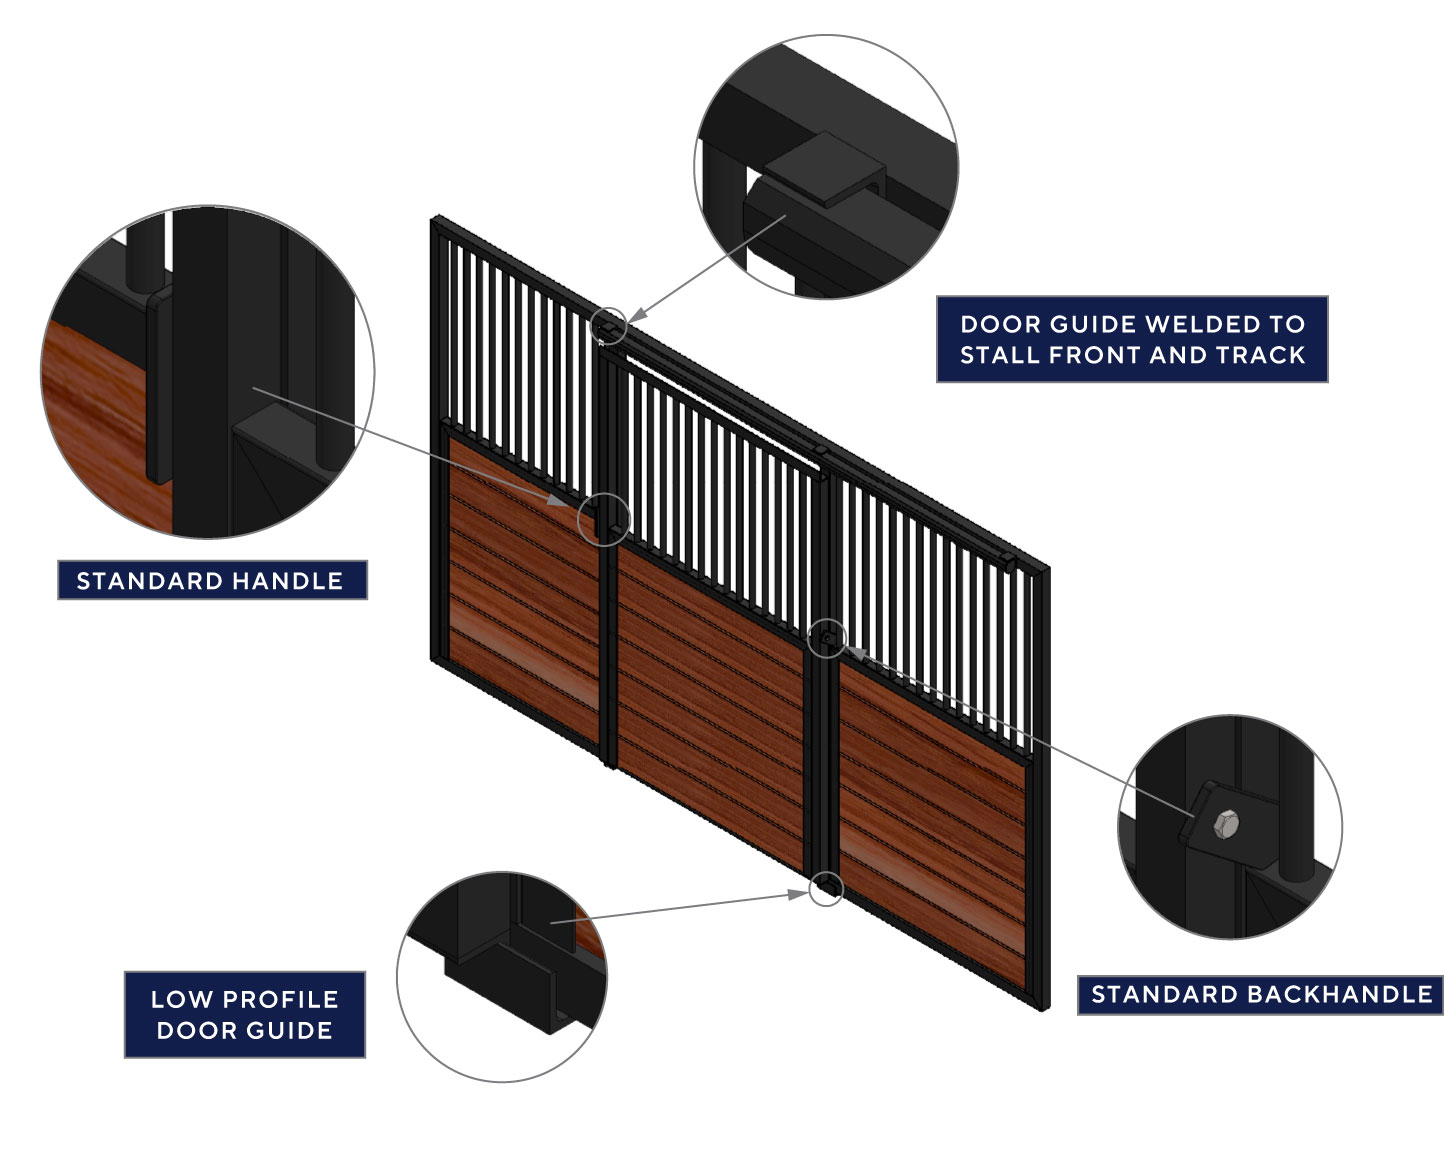 A stall front diagram showing welds, backhandles, door guides and layout